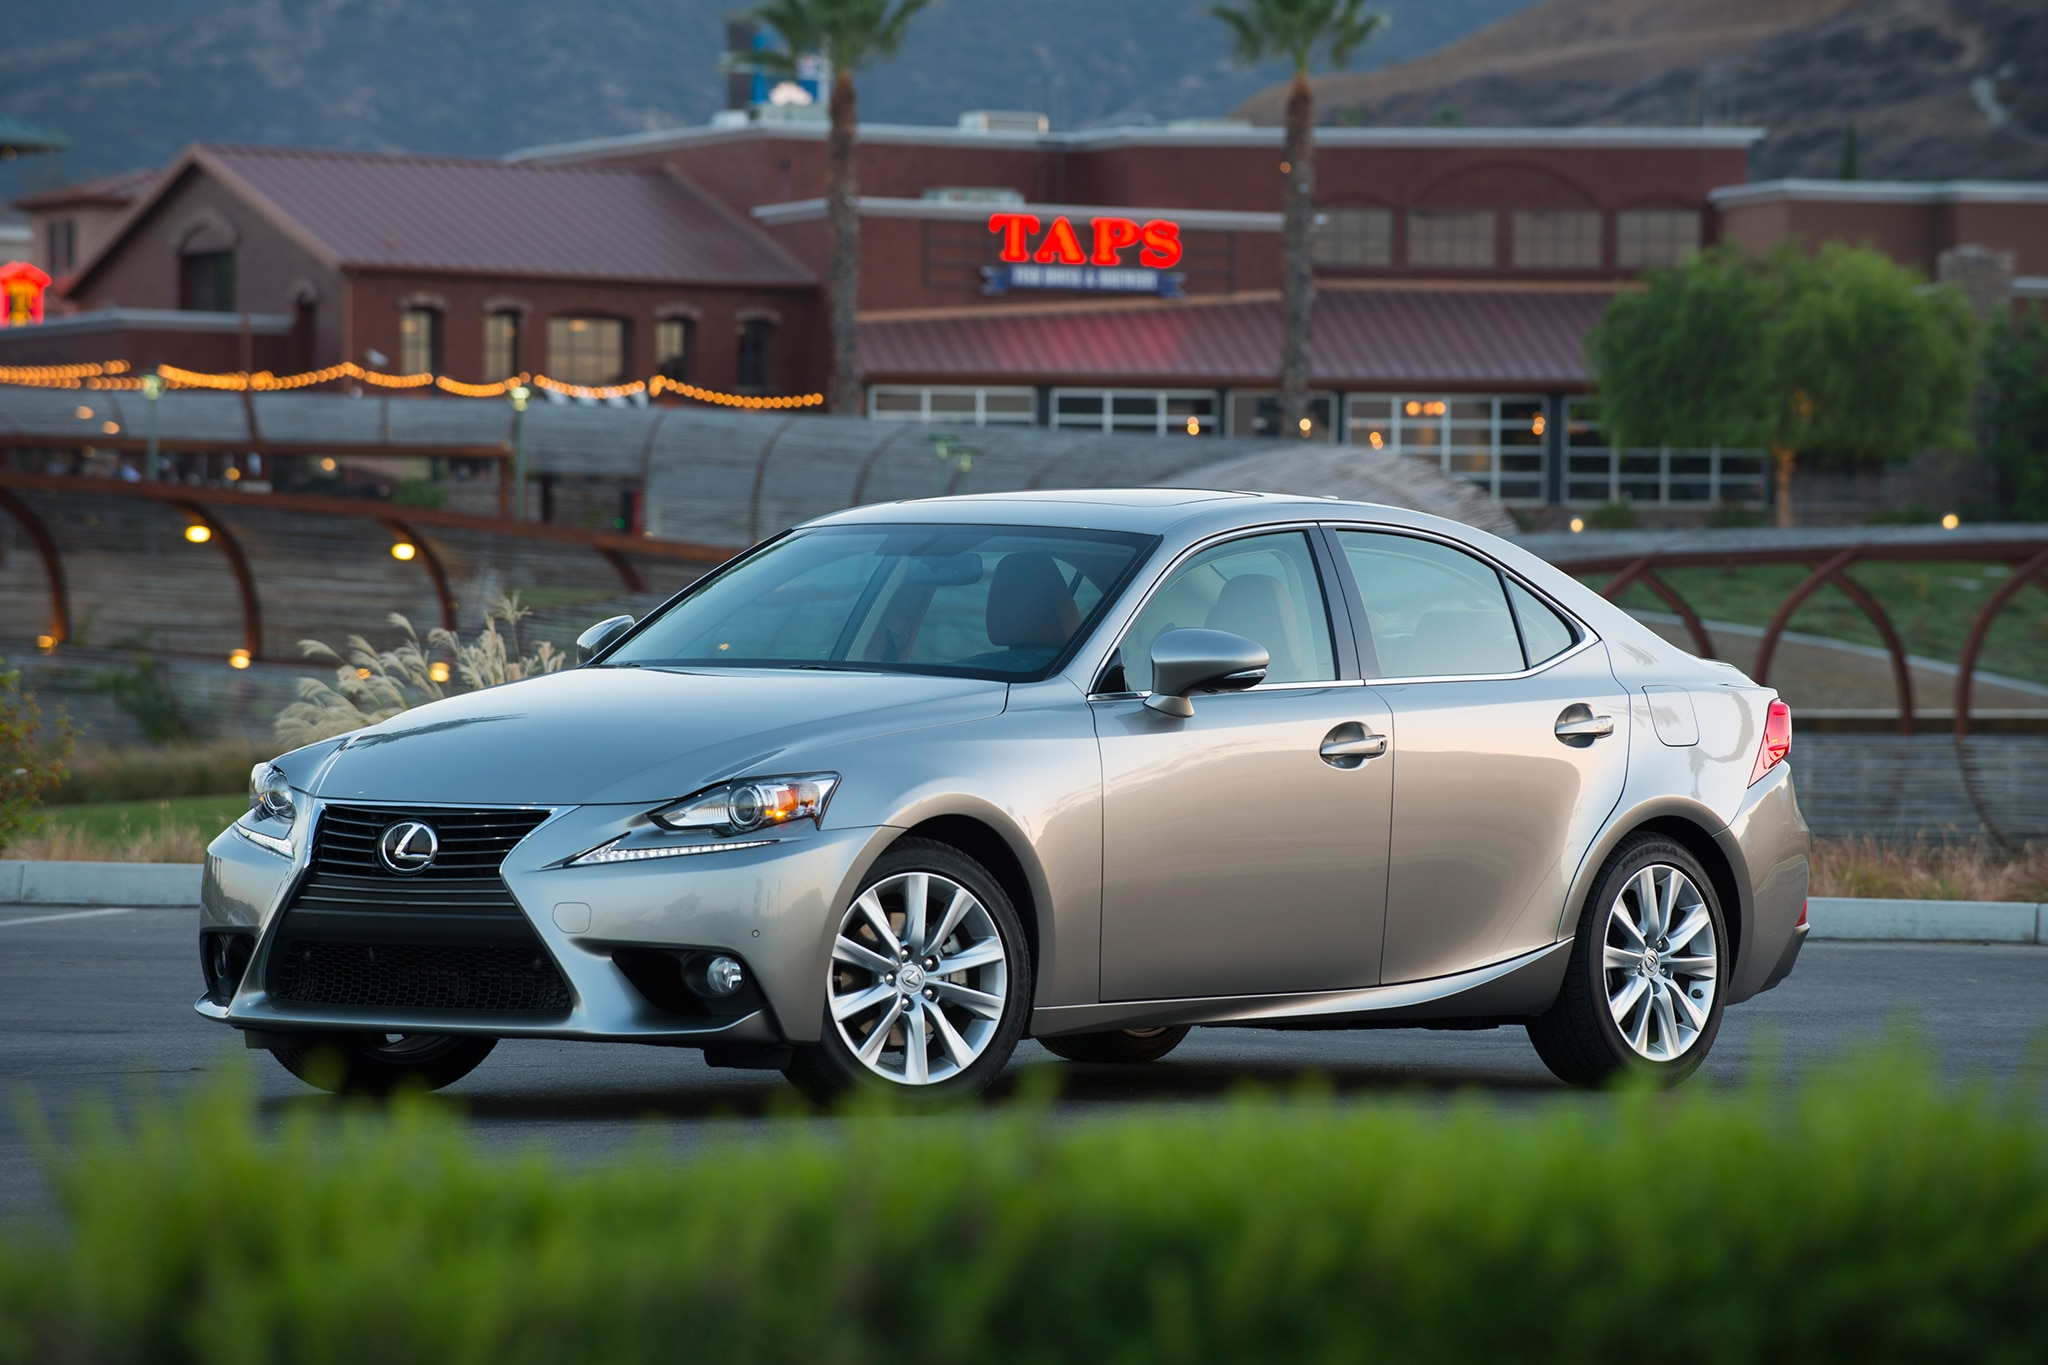 lexus s drgnfenx passenger front is new